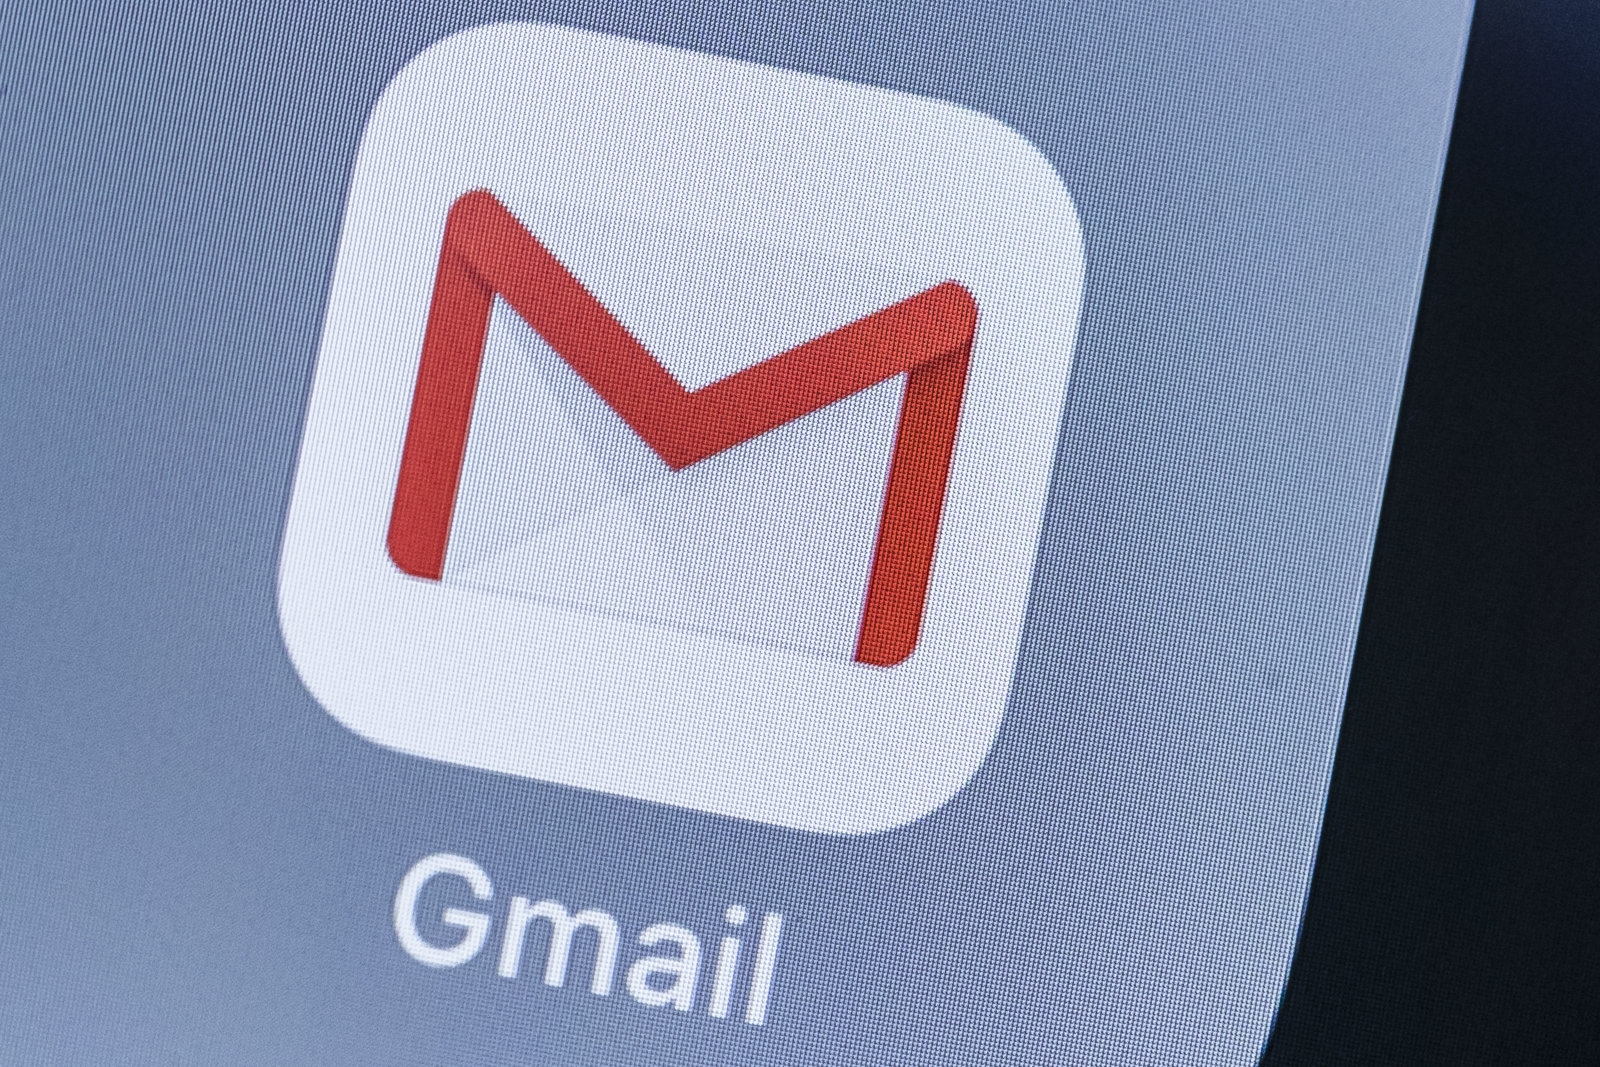 Gmail's expanded right-click menu makes it easier to manage email | DeviceDaily.com